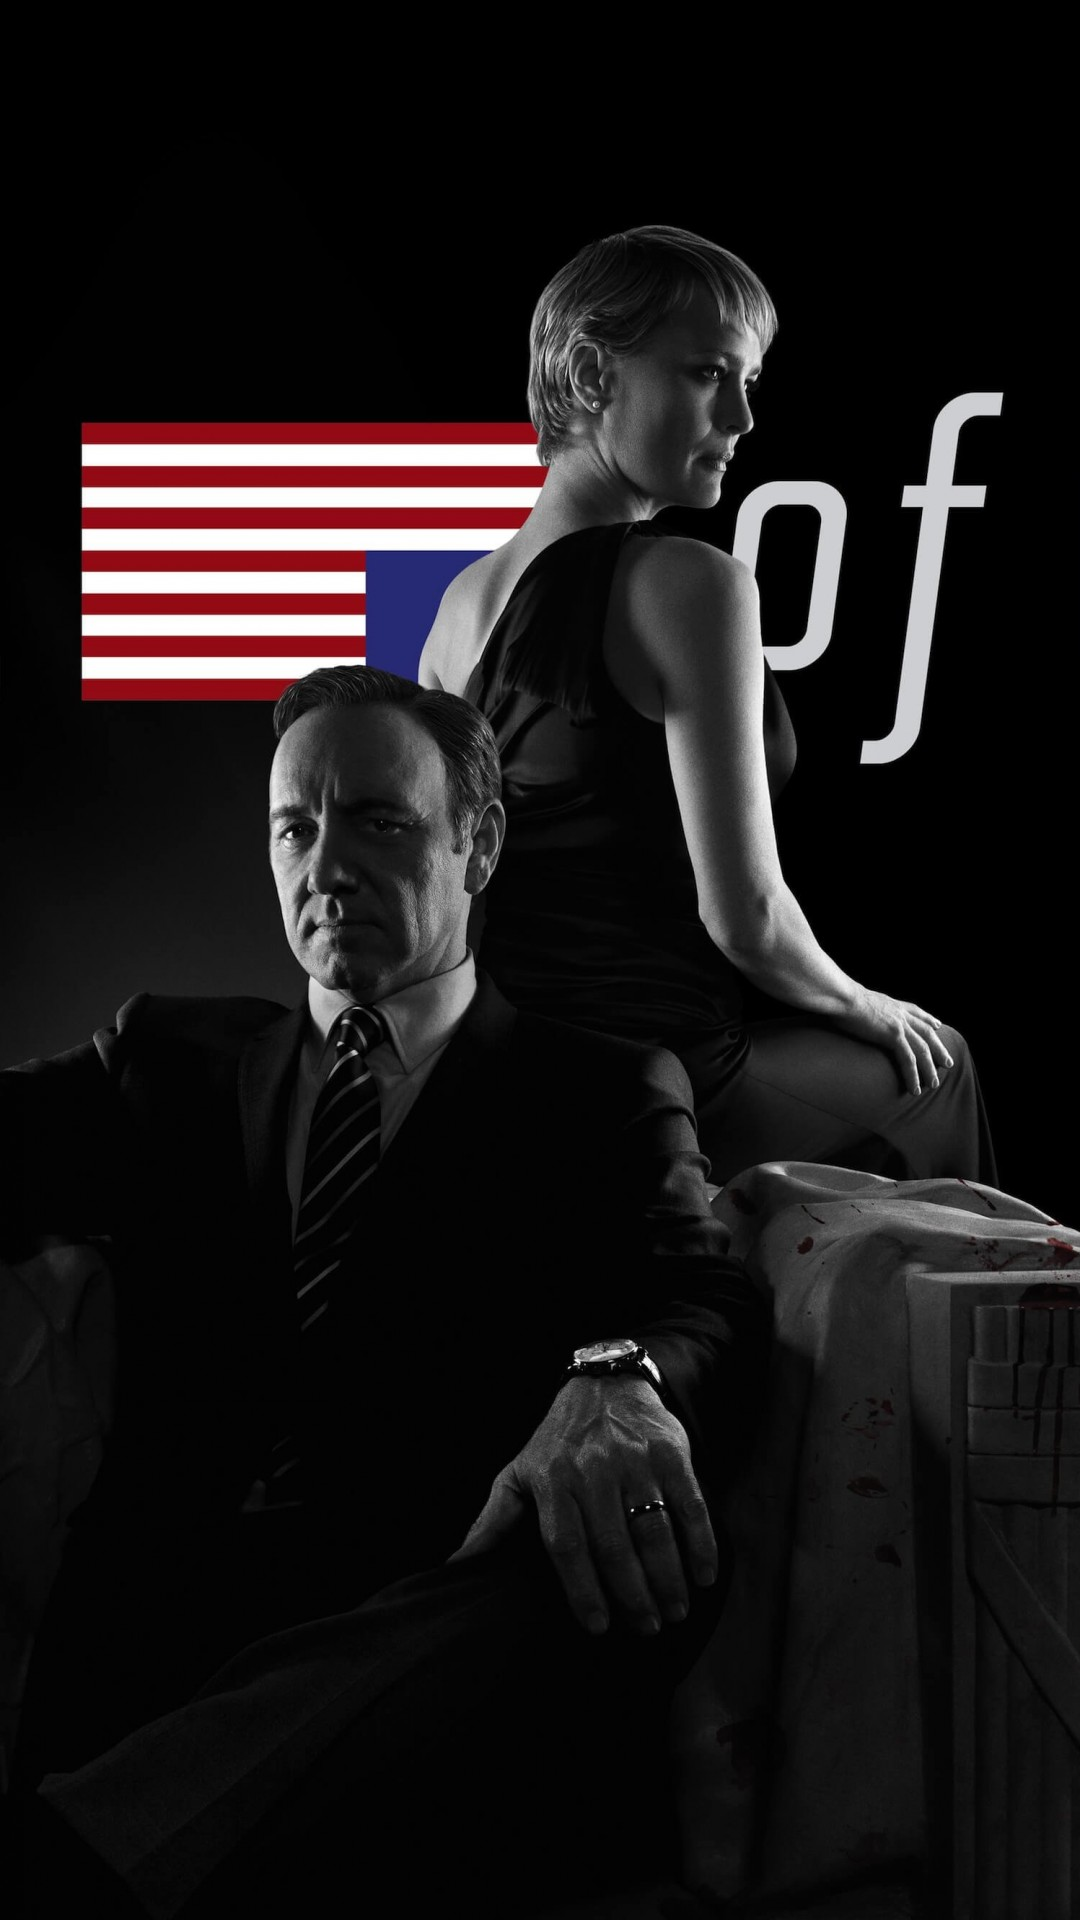 House of Cards - Black & White Wallpaper for SAMSUNG Galaxy S4